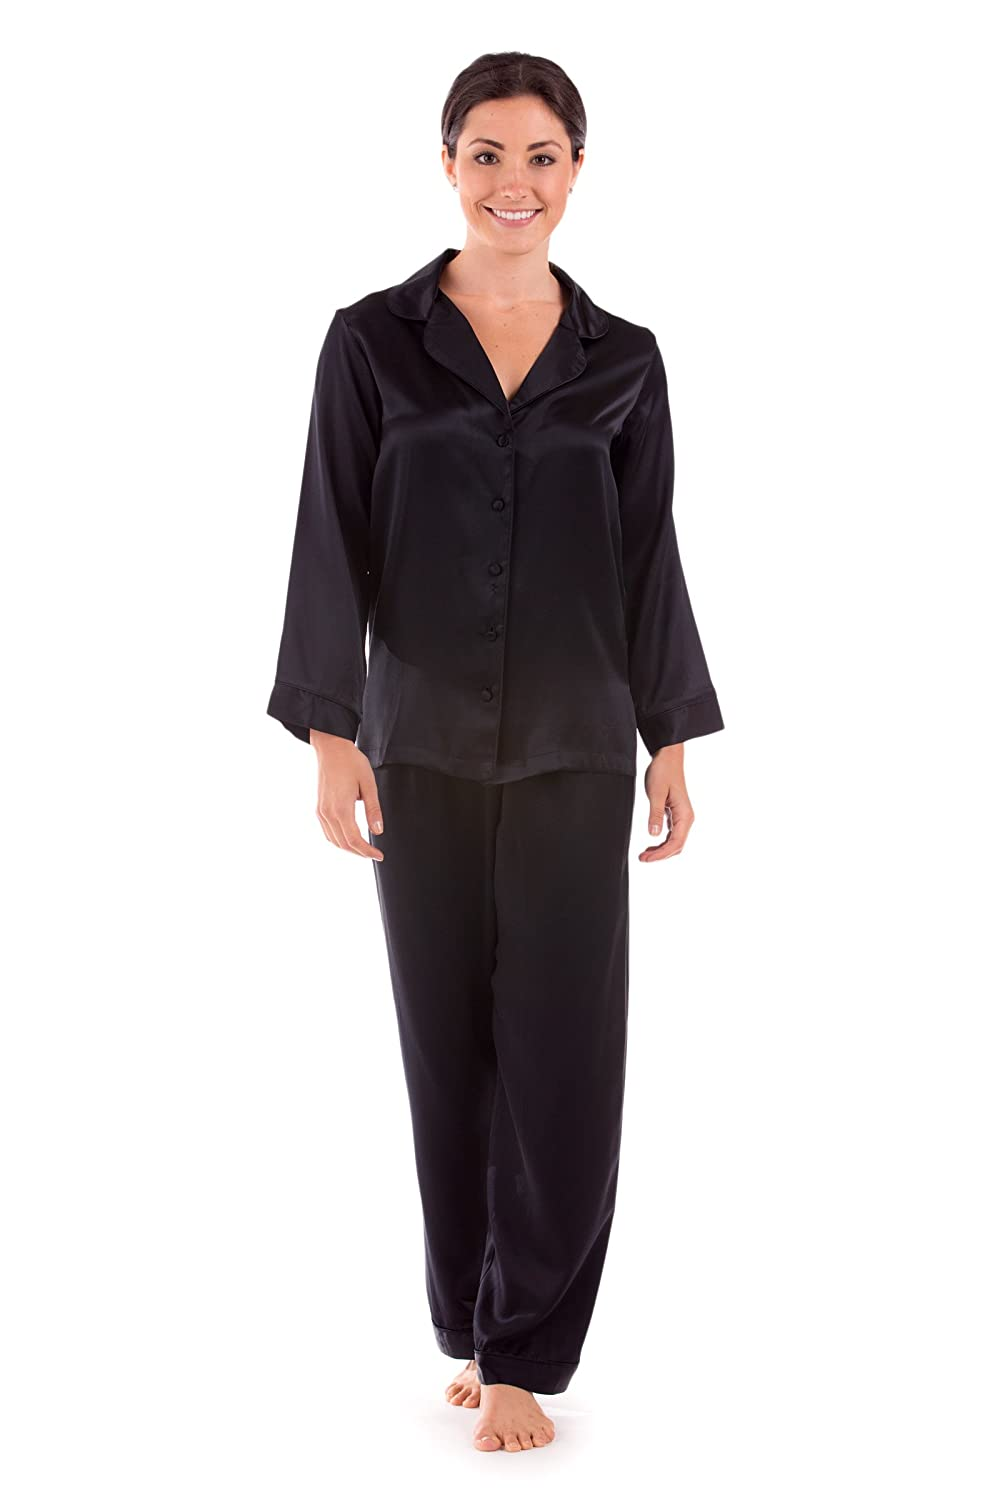 TexereSilk Women's Luxury Silk Pajama Set (Morning Dew) Beautiful Gifts